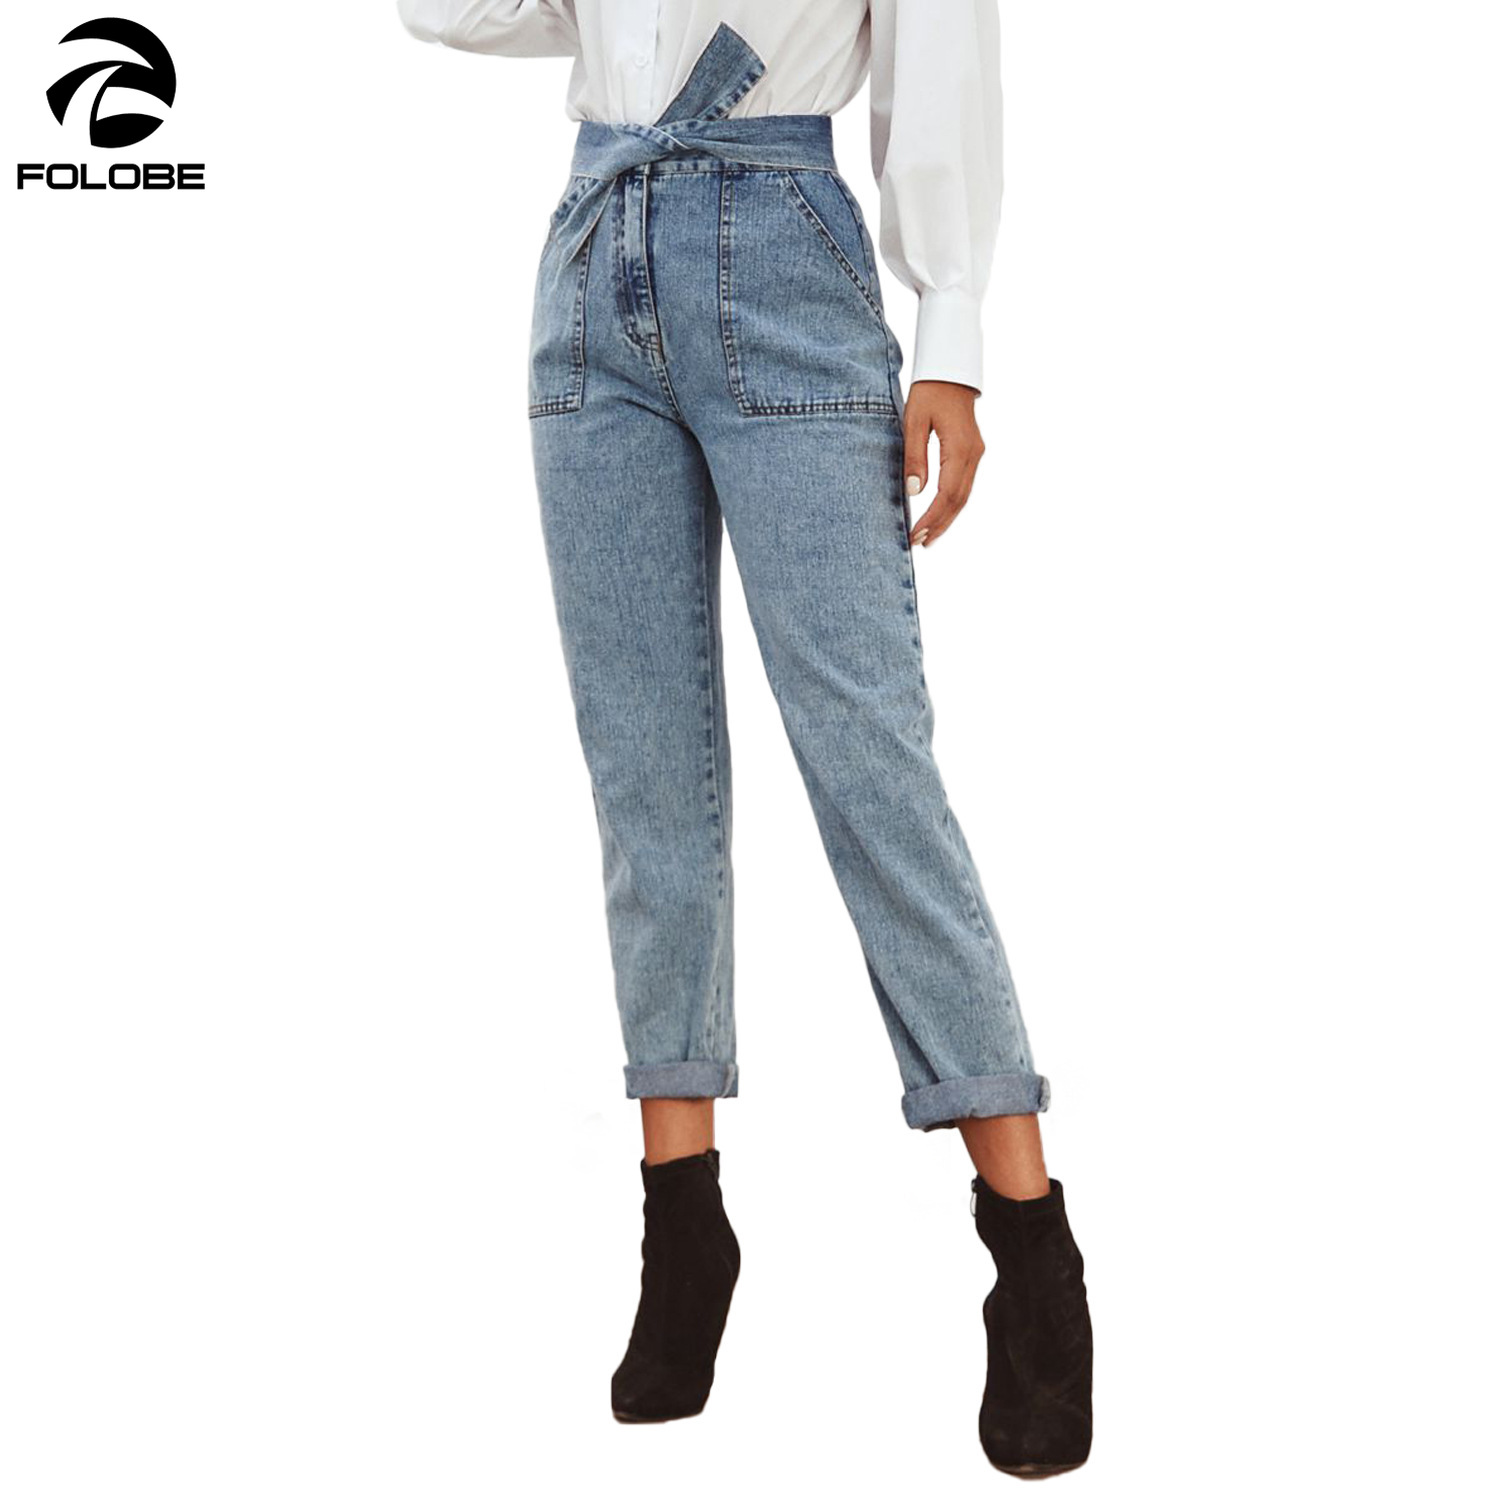 FOLOBE Fashion Denim Pants Women Blue Bowknot Belt Cargo Pants Long Big Pockets Casual Trousers Women Jeans Female 2020